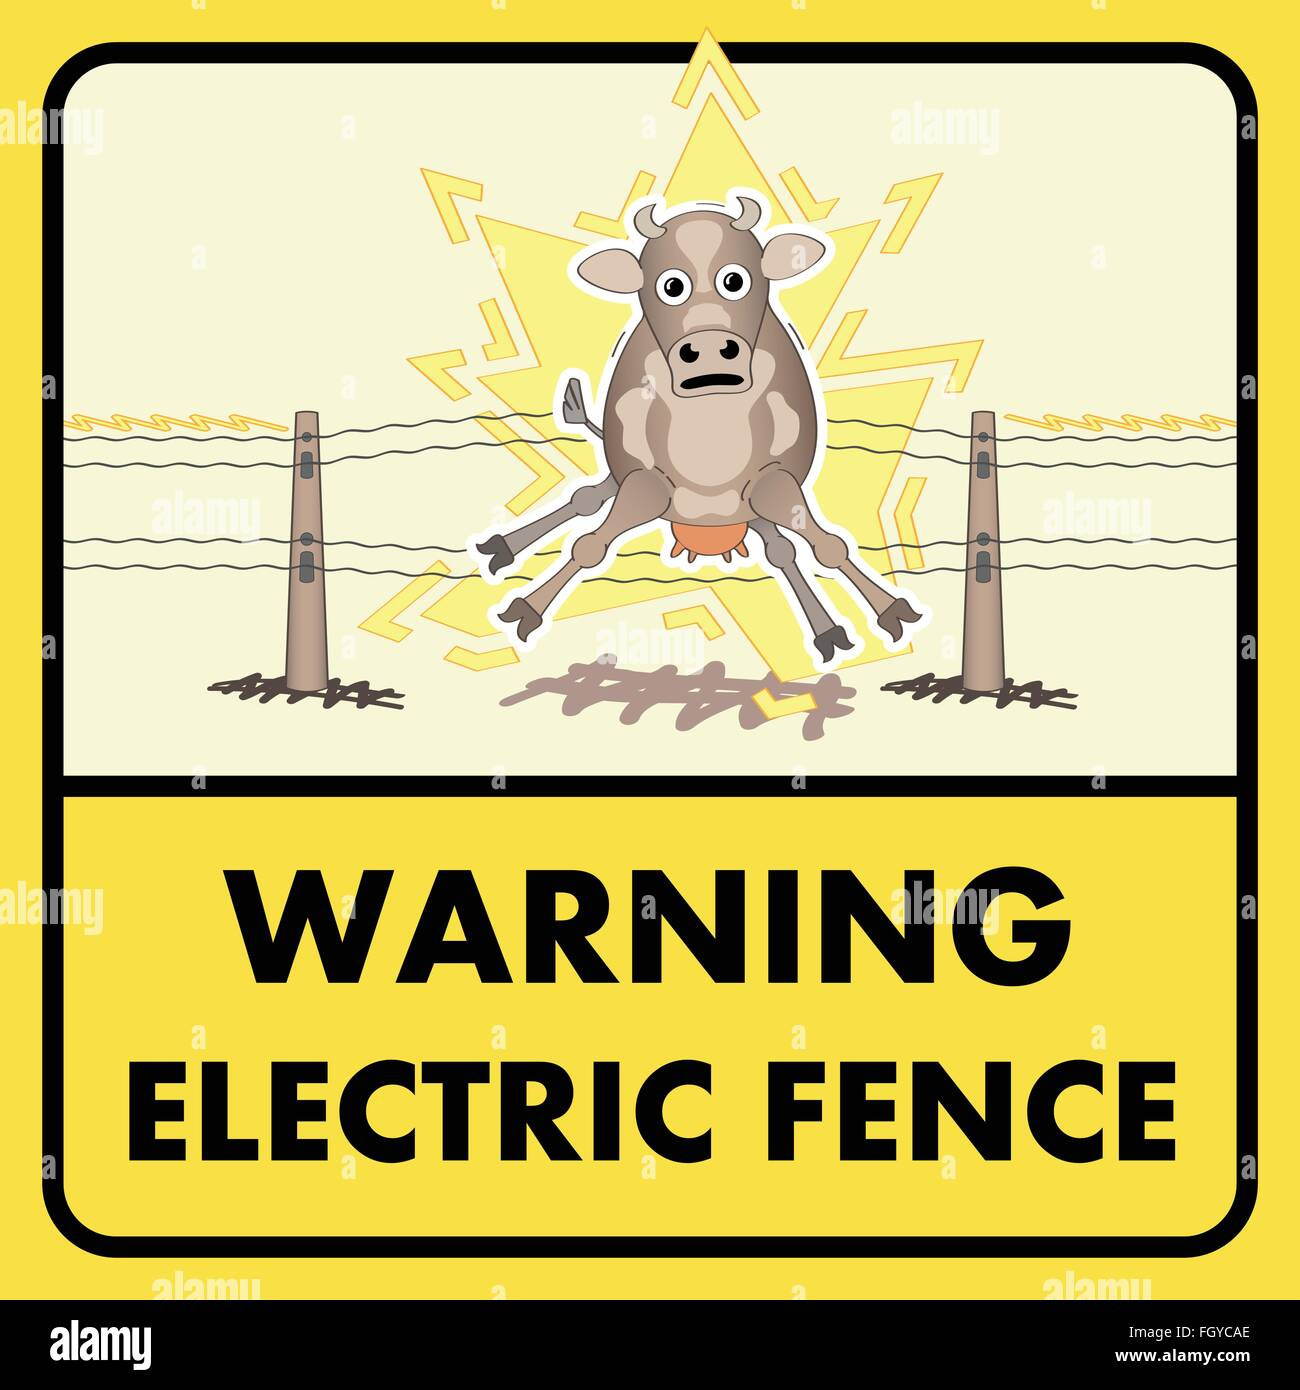 Electric fence sign - Stock Vector